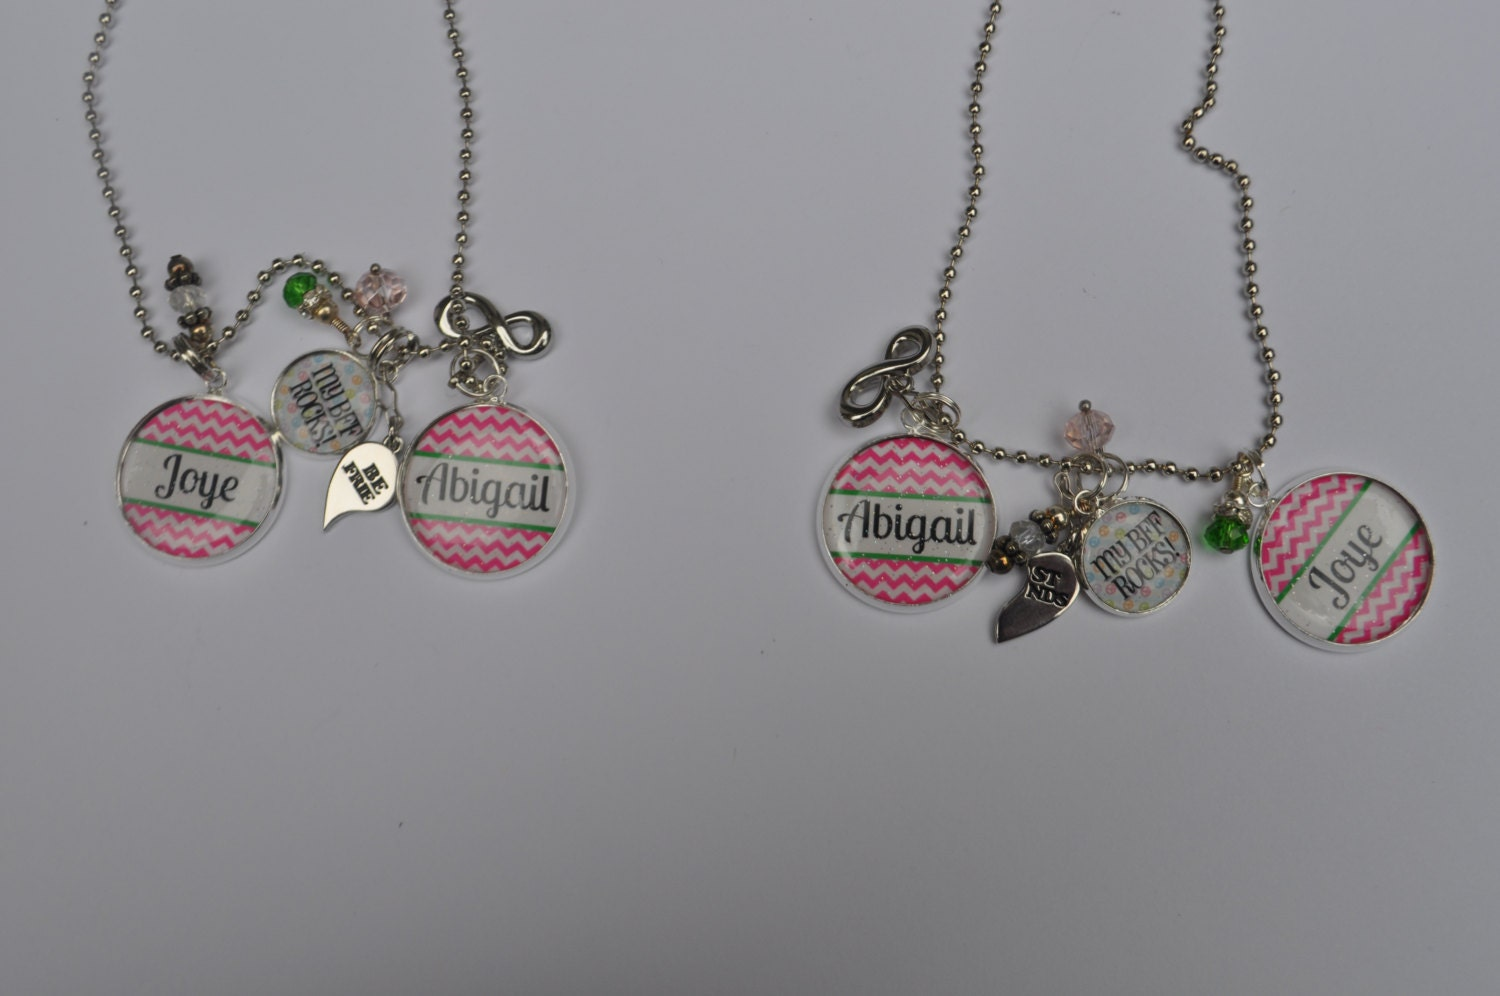 2 personalized best friends necklaces with 3 pendants